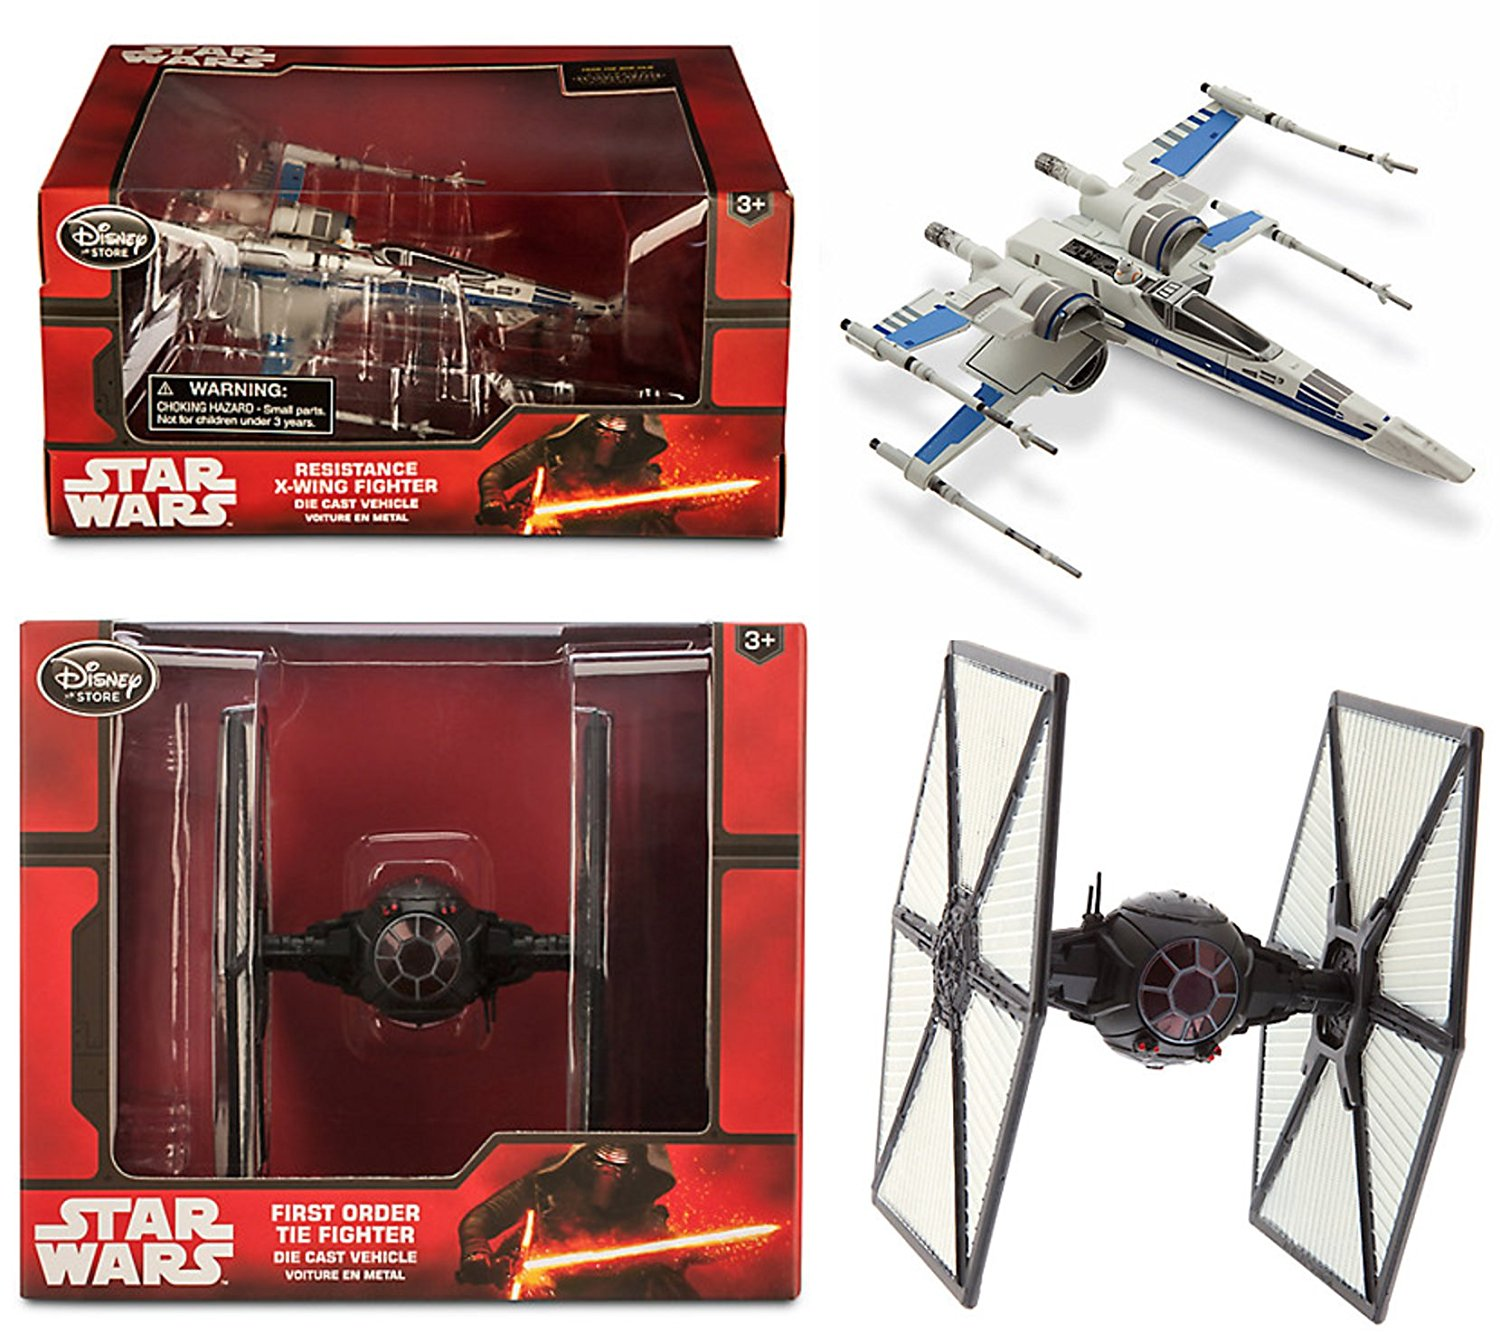 Disney Diecast X Wing Buy Millennium Falcon Poes X Wing Resistance X Wing First